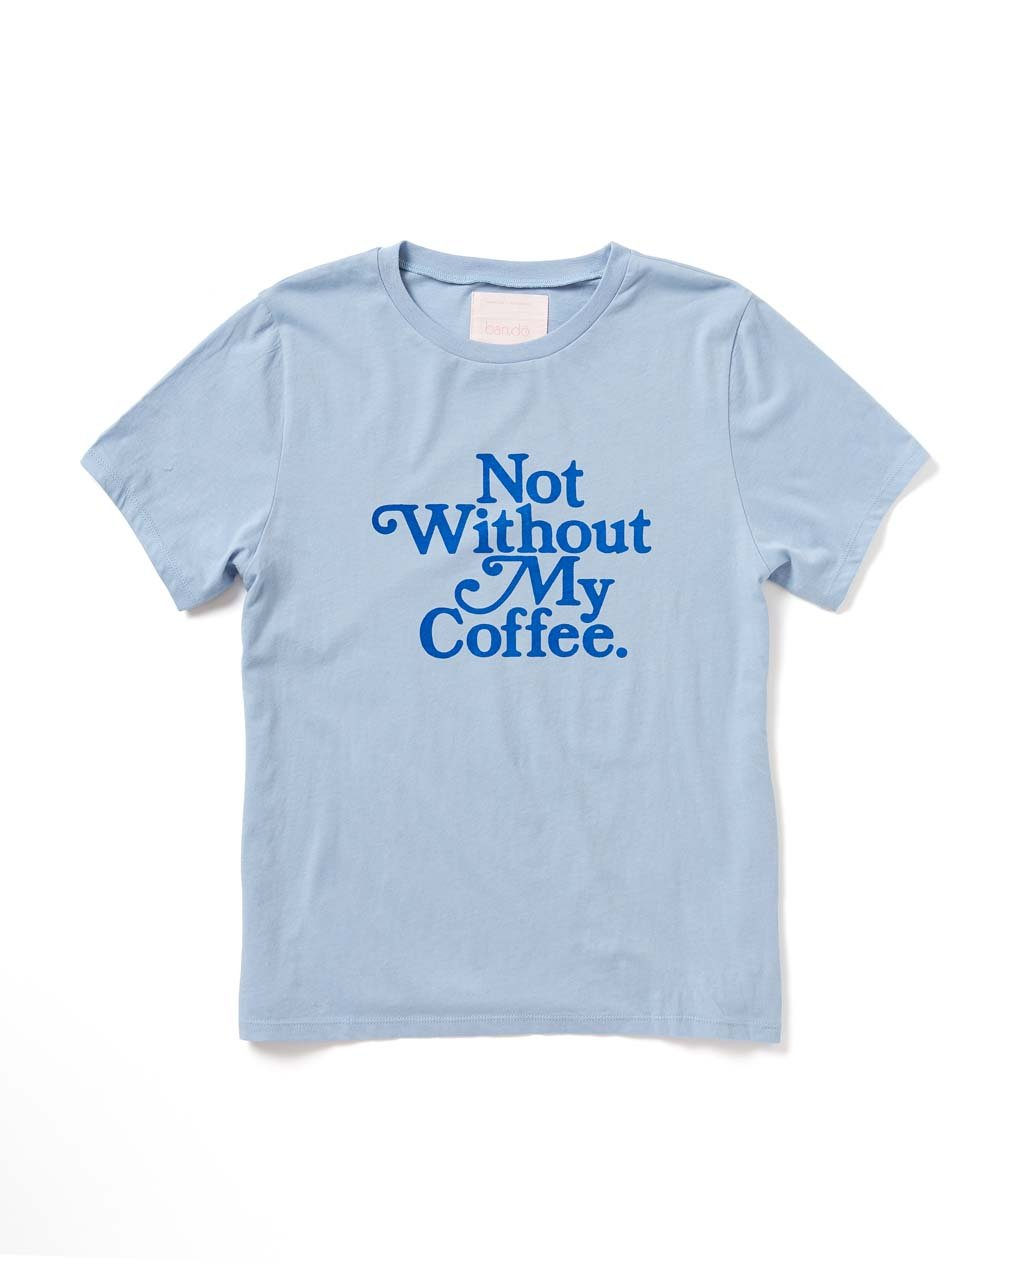 Not Without My Coffee Tee - Stonewash Blue